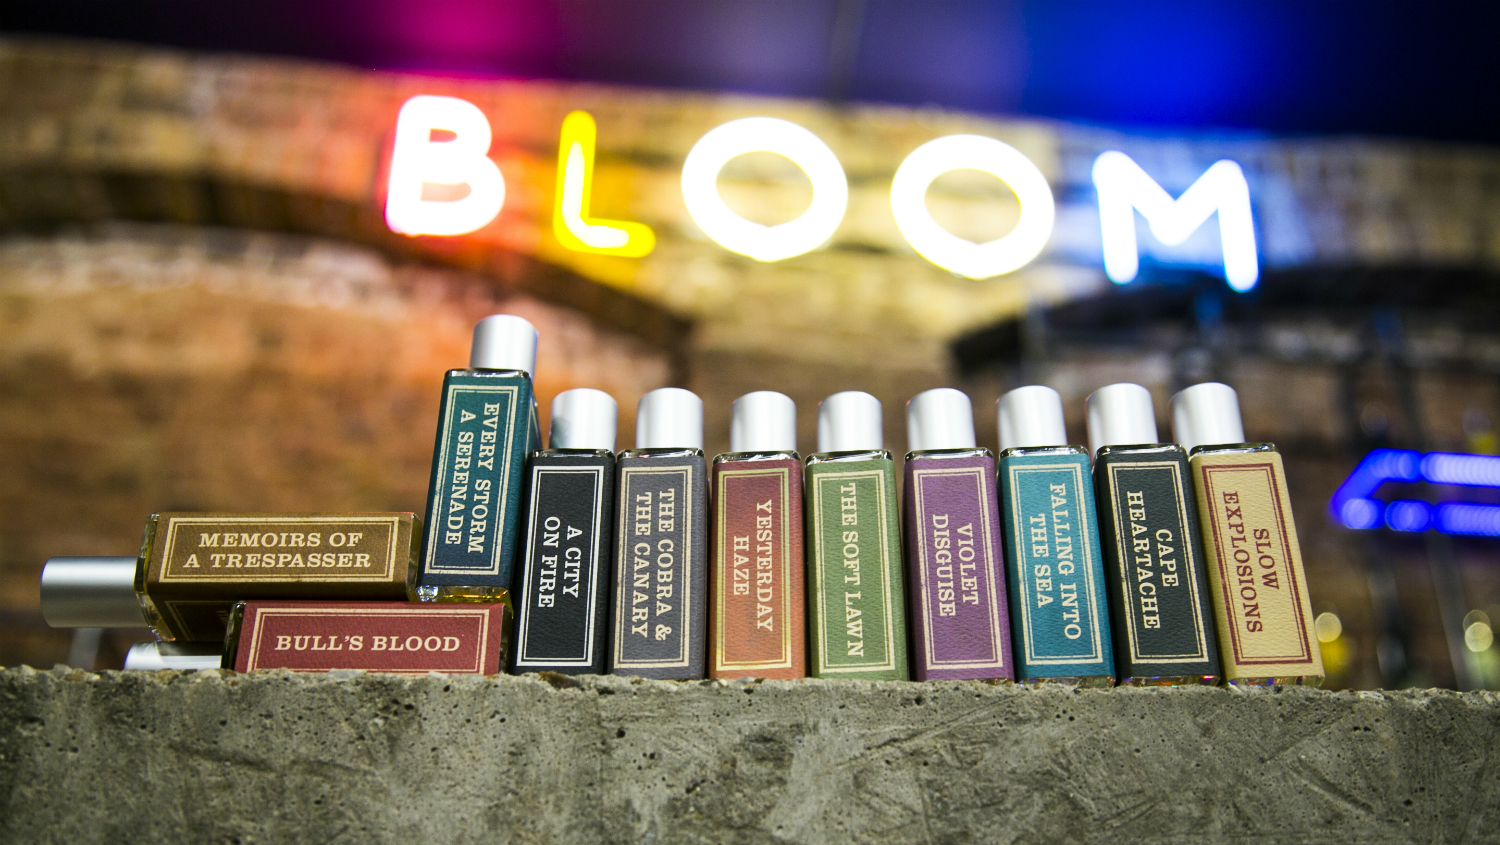 Bloom Perfumery, 100 Best Shops 2017